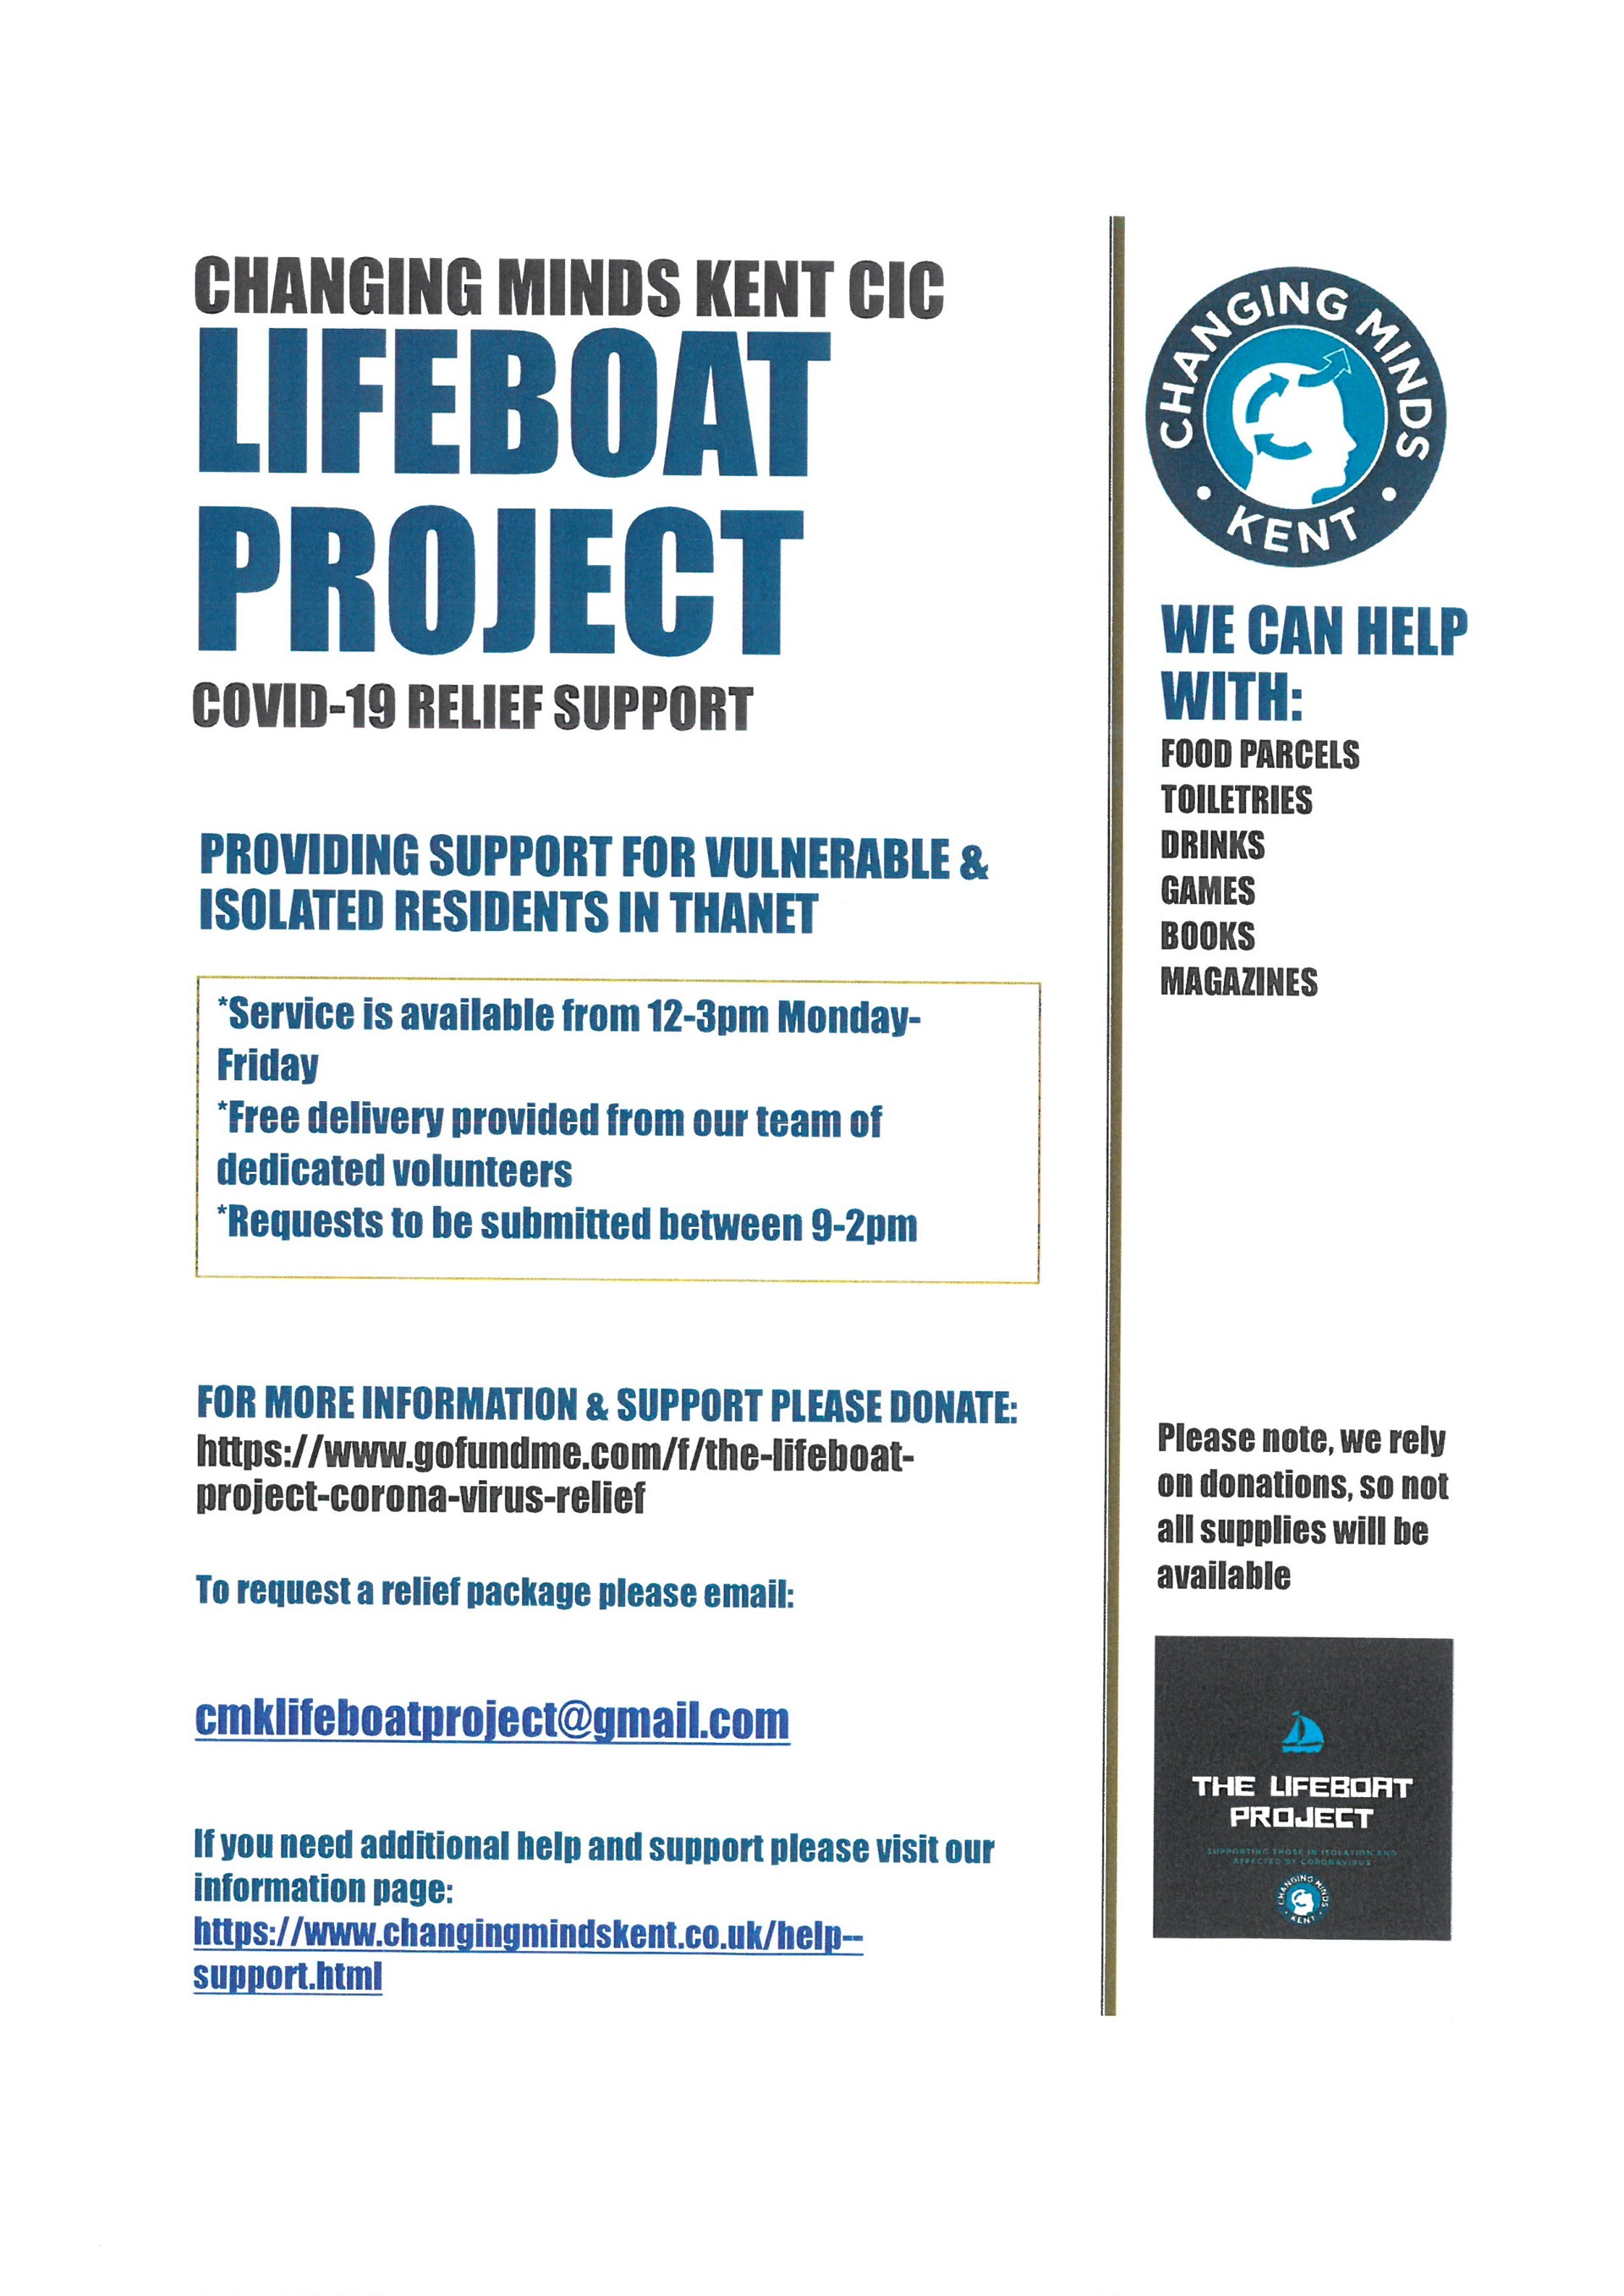 Lifeboat Project